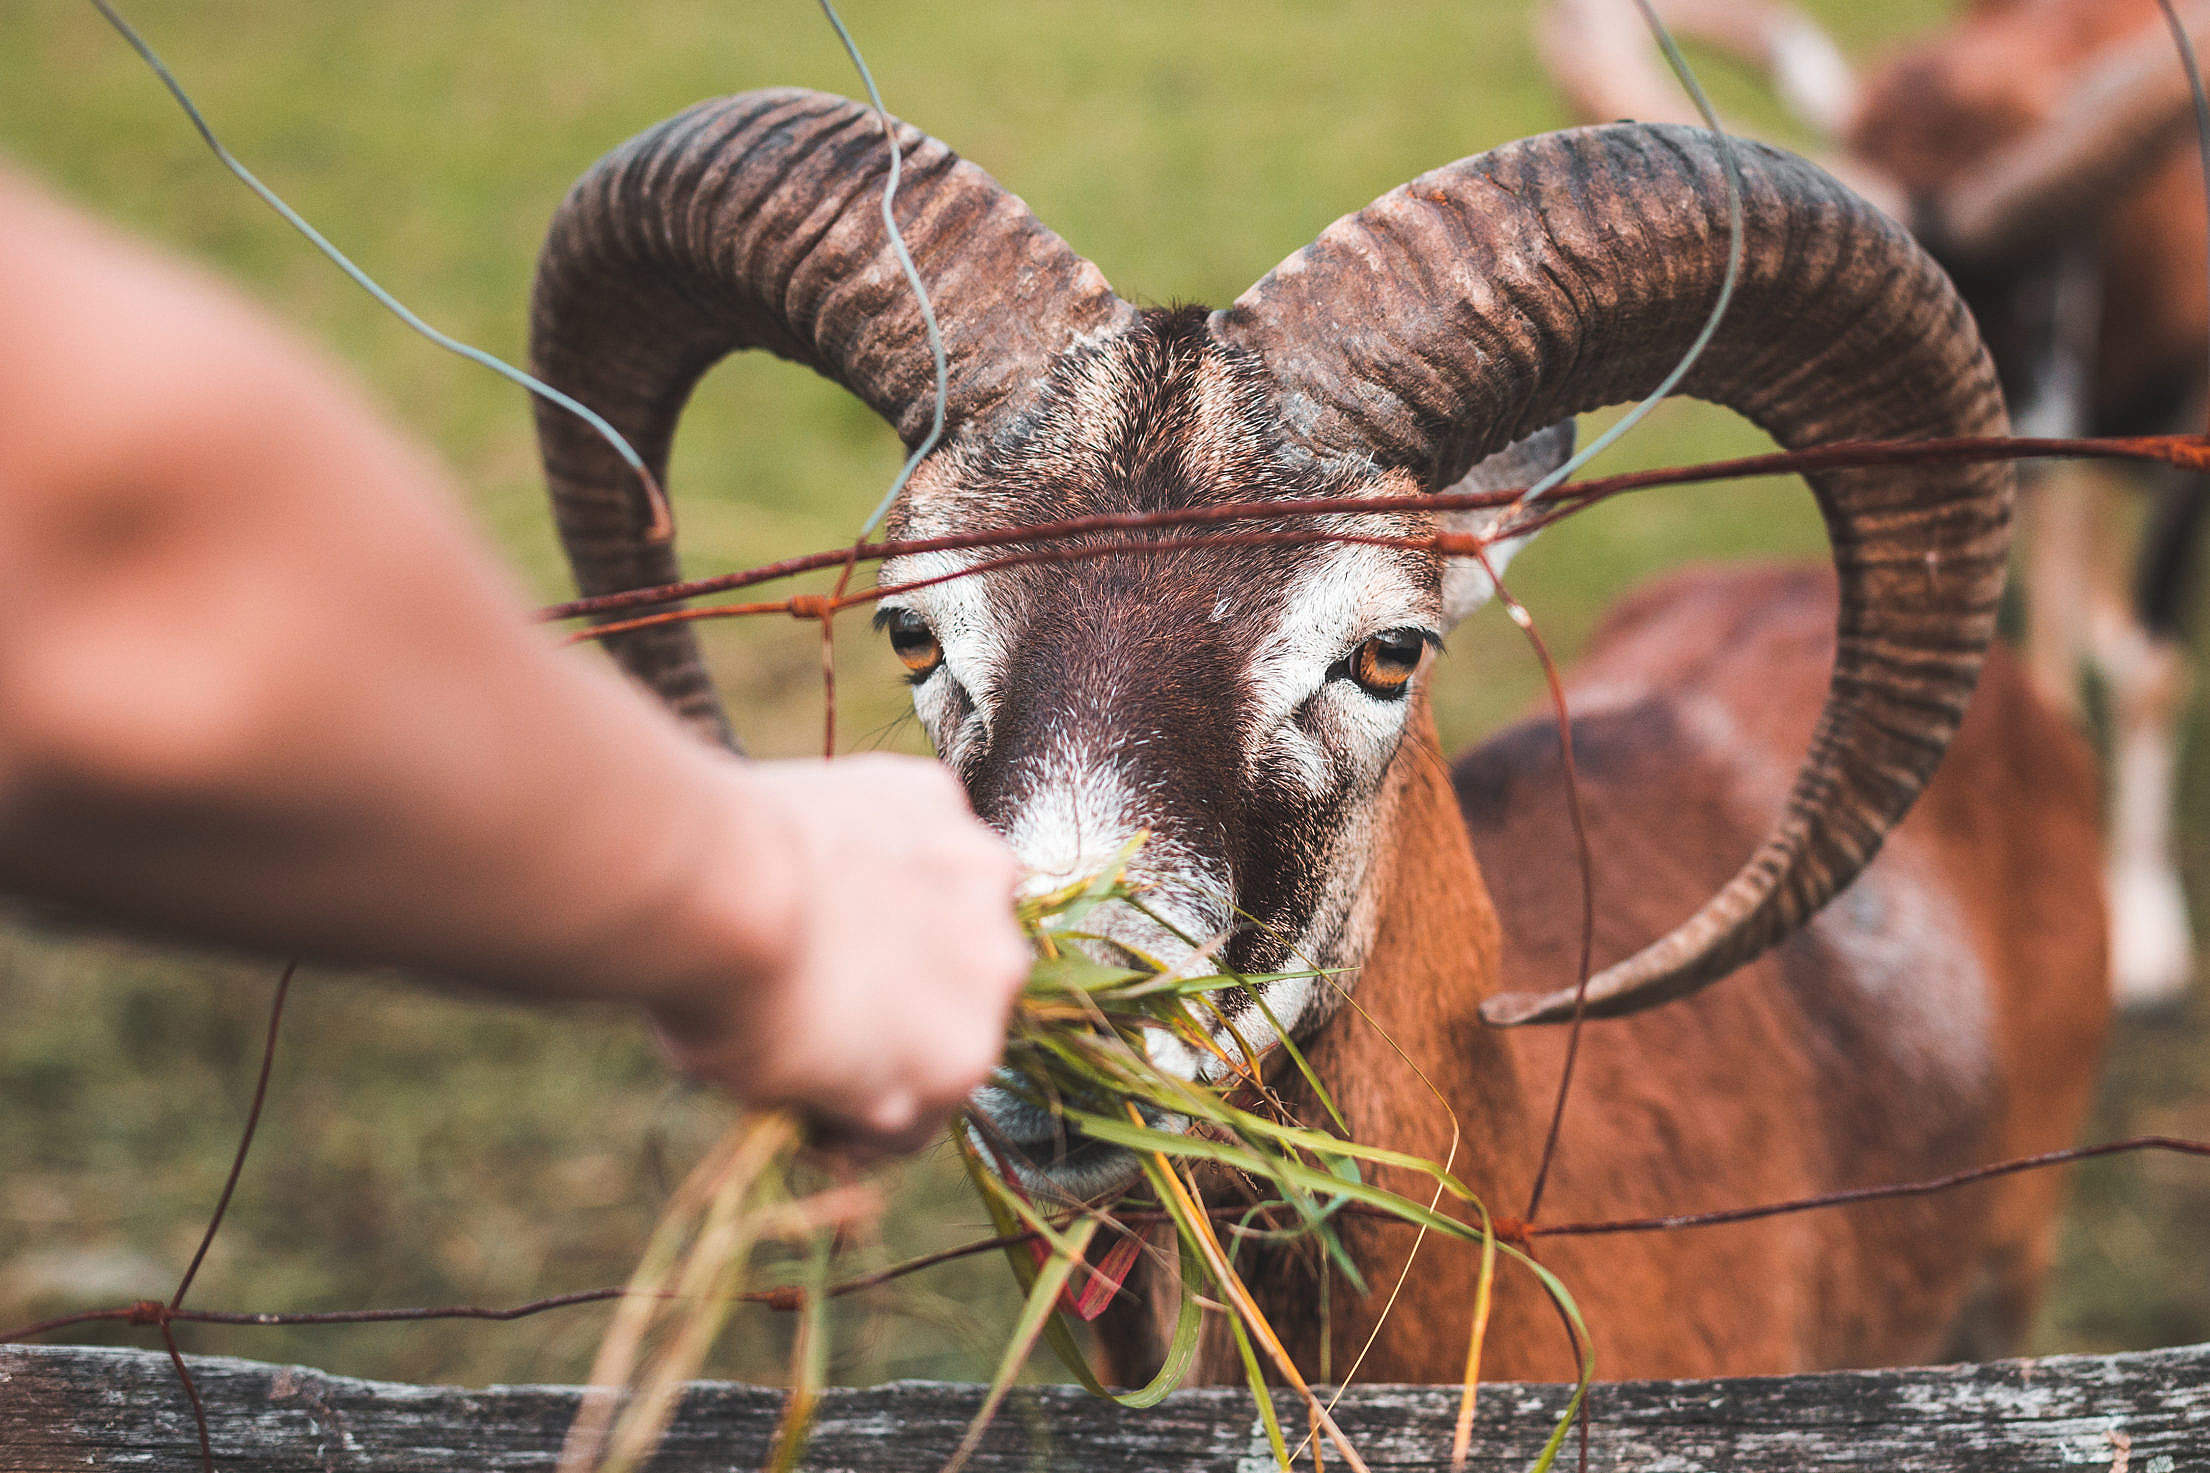 Feeding a Goat with Big Horns Free Stock Photo